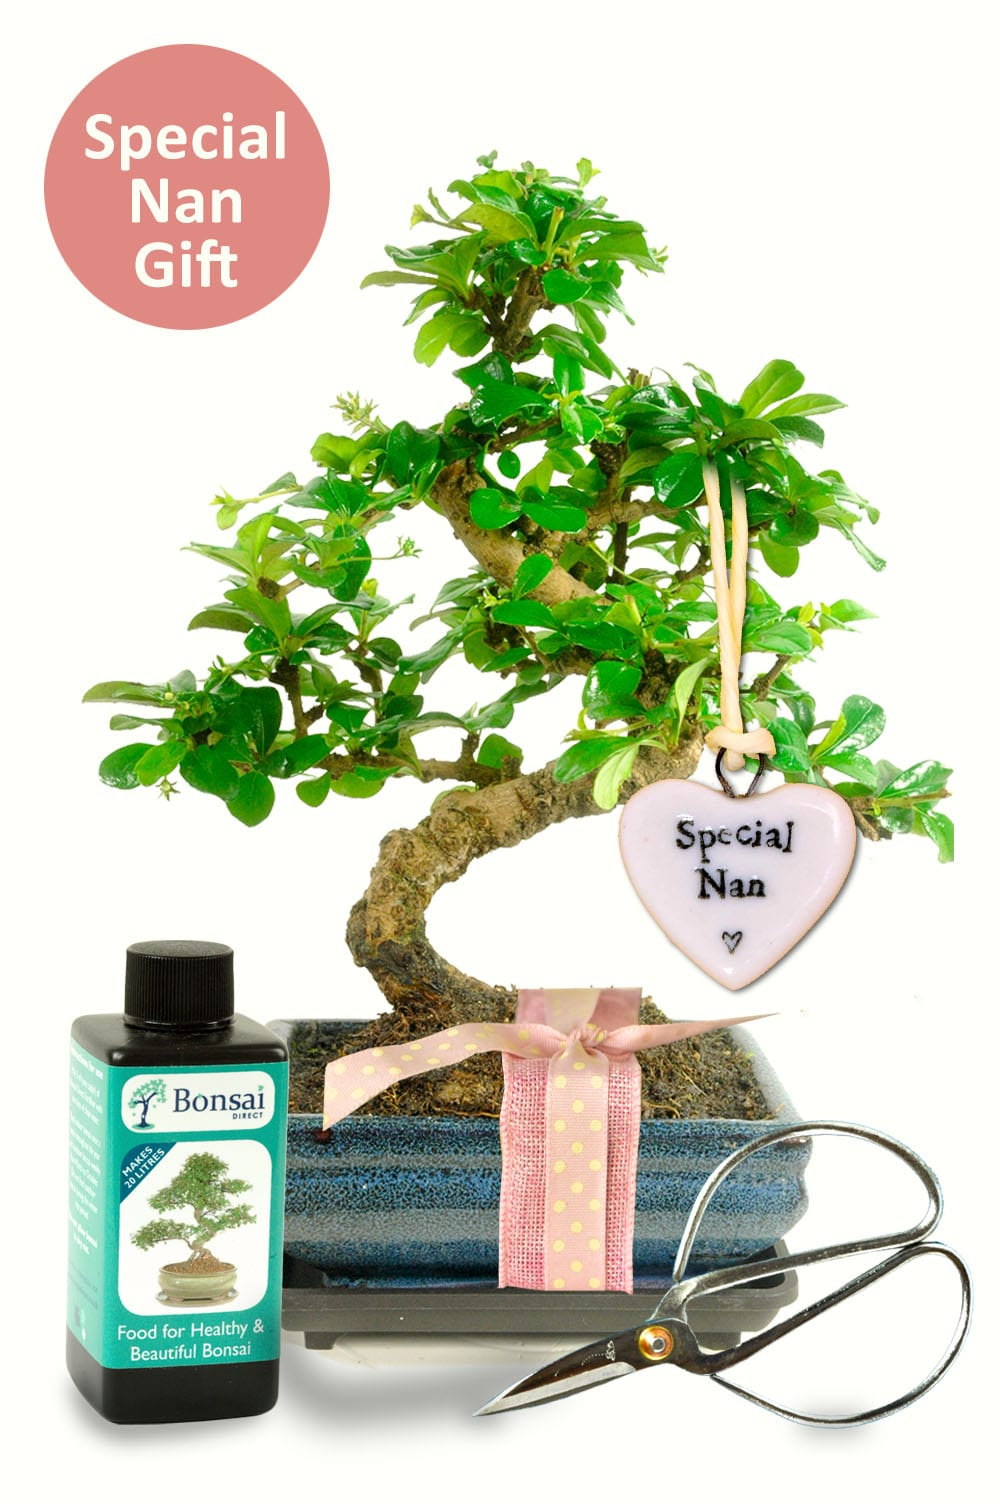 Special nan twisty bonsai birthday gift